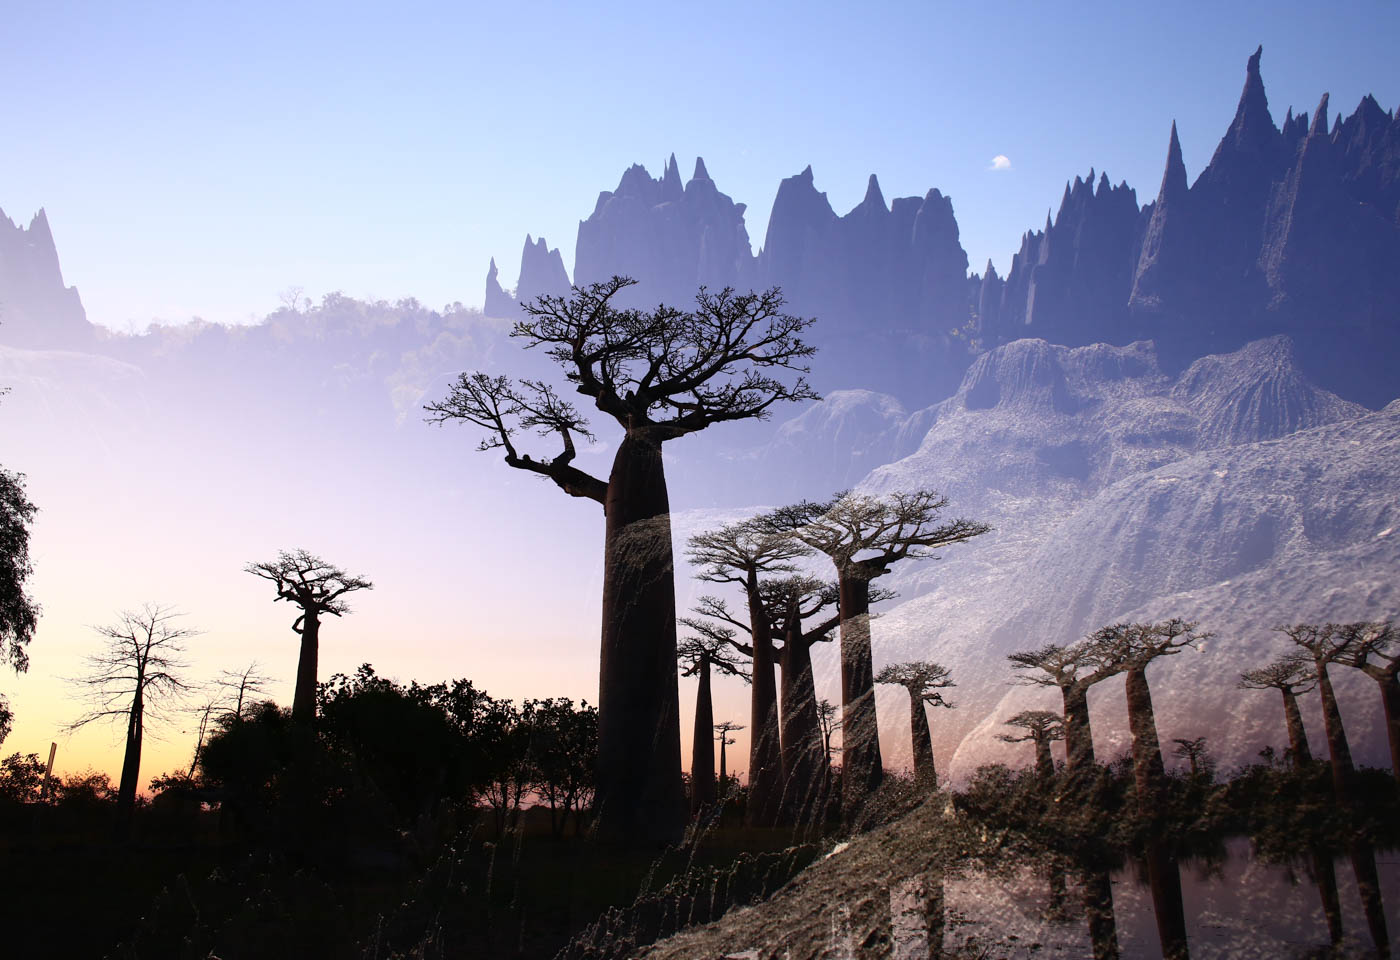 Multiple exposure trees and mountains in Madagasgar taken with Canon EOS 6D DSLR camera